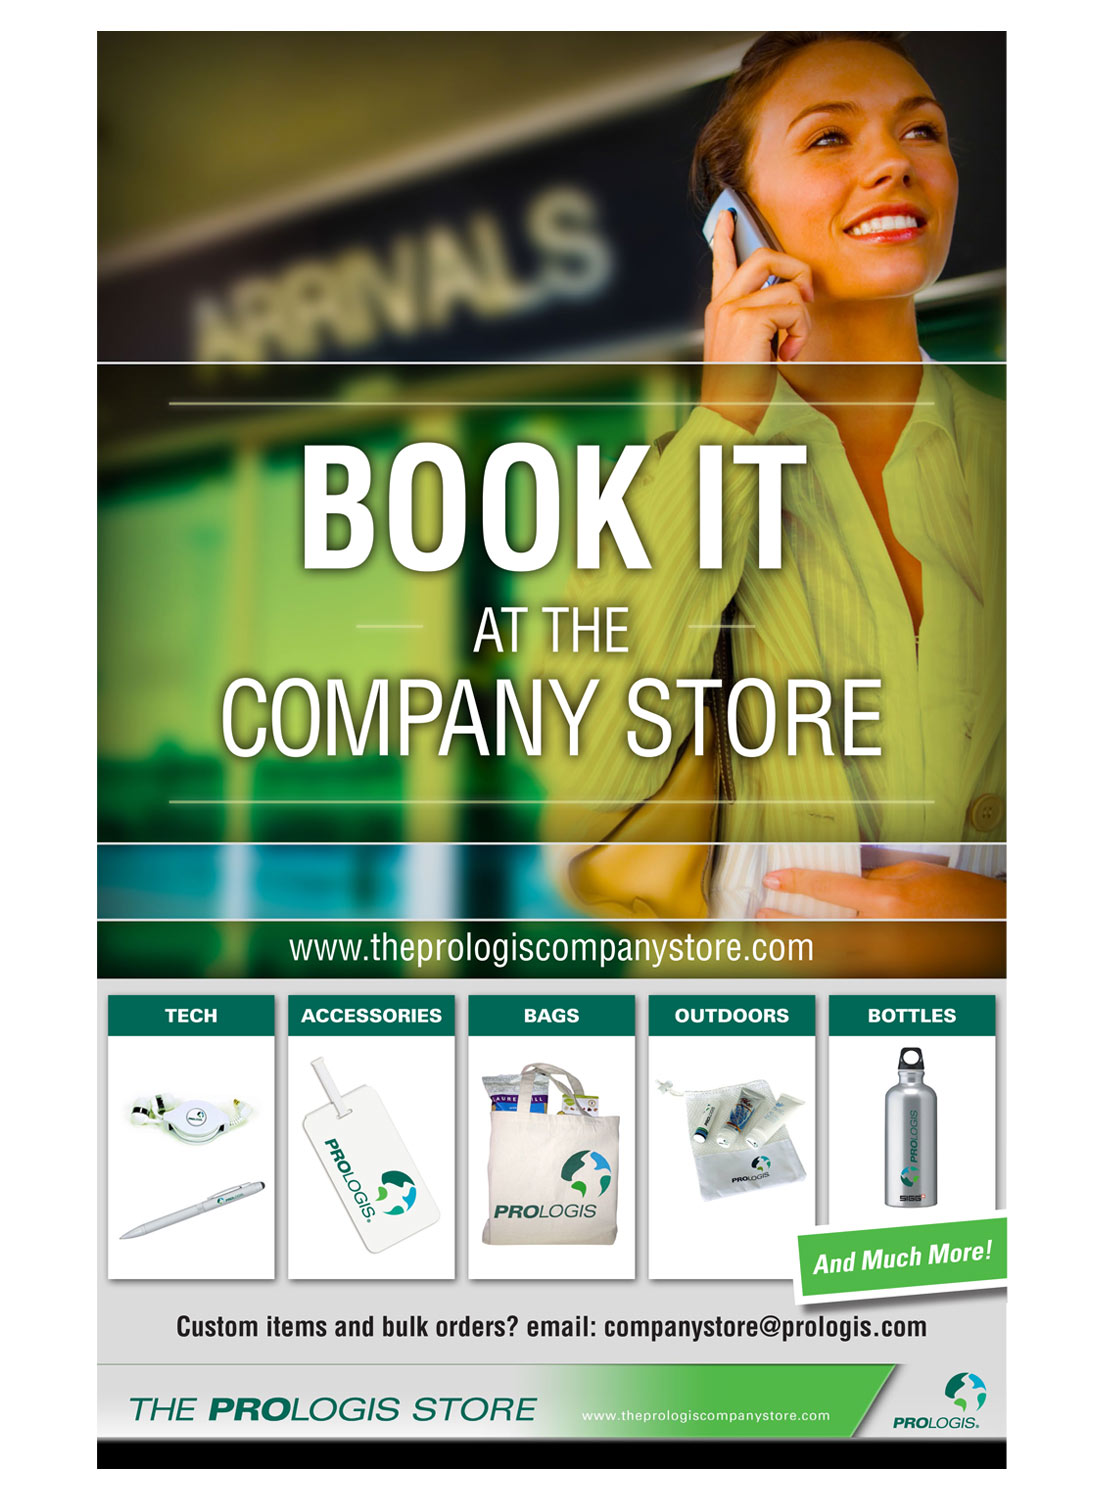 Prologis_StorePoster2_1100x1500